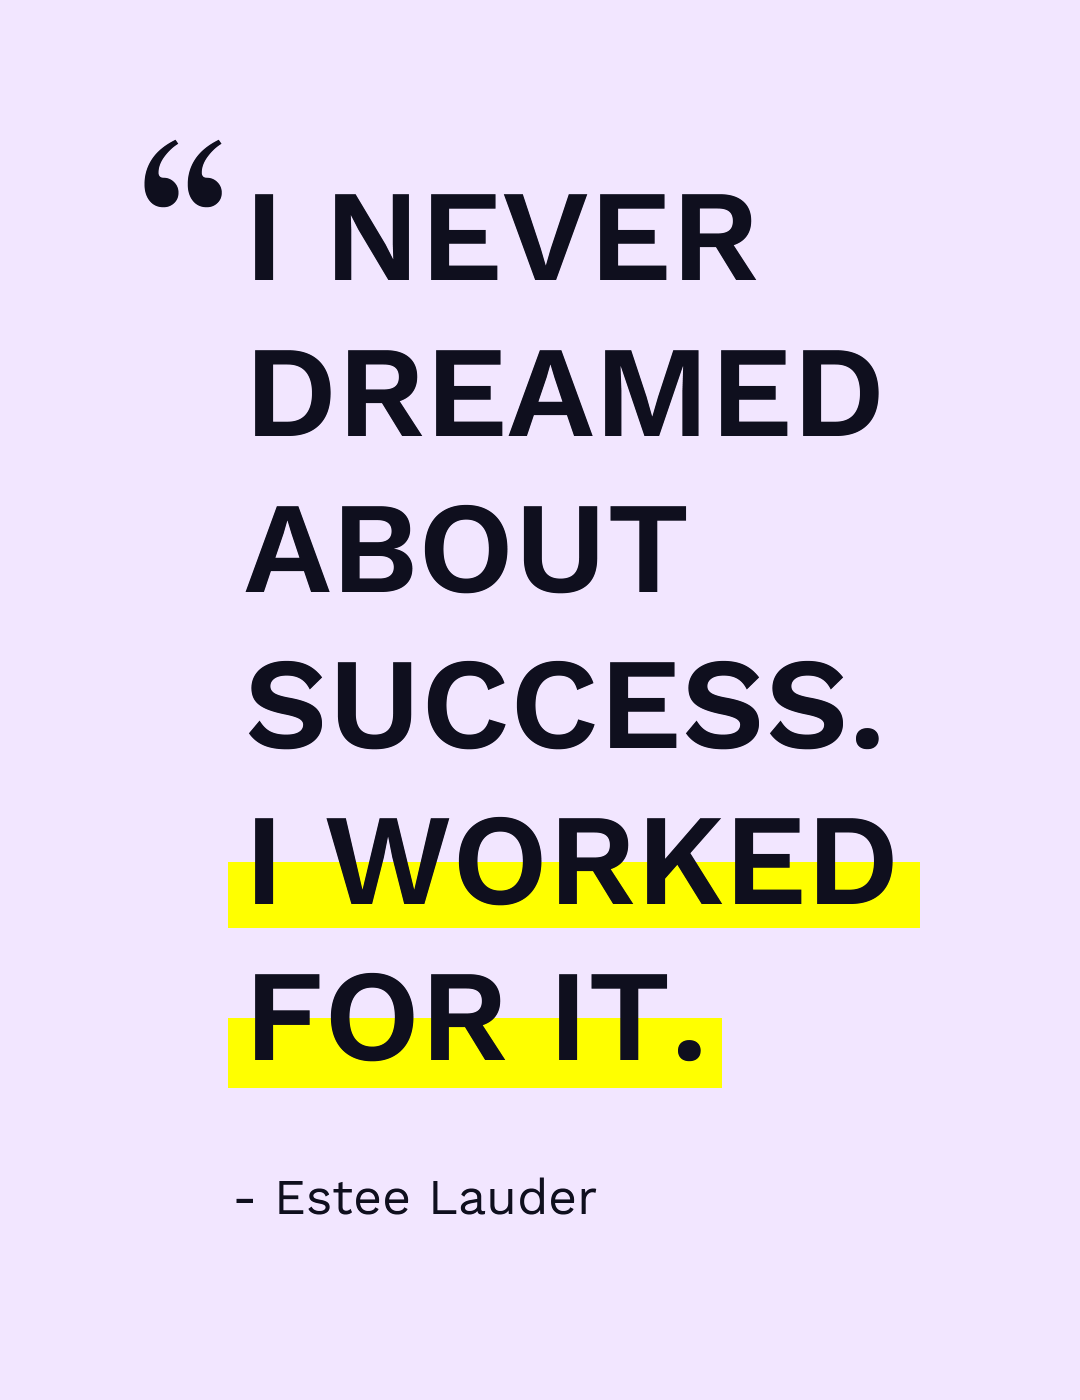 A text of Estee Lauder quote about success